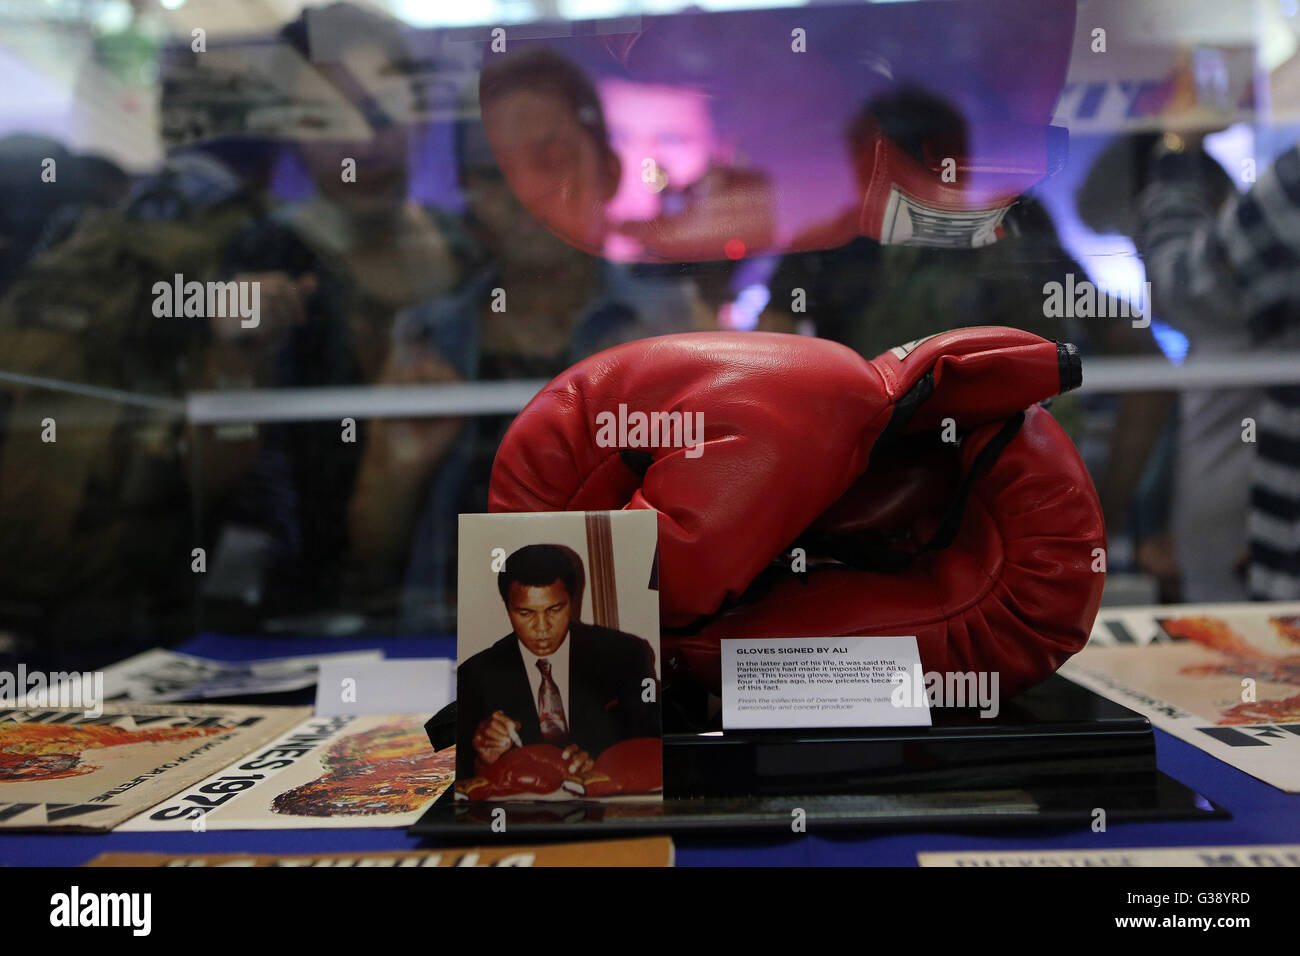 Quezon City, Arizona, USA. 3rd June, 2016. People look at a pair of boxing gloves signed by Muhammad Ali that he - Stock Image